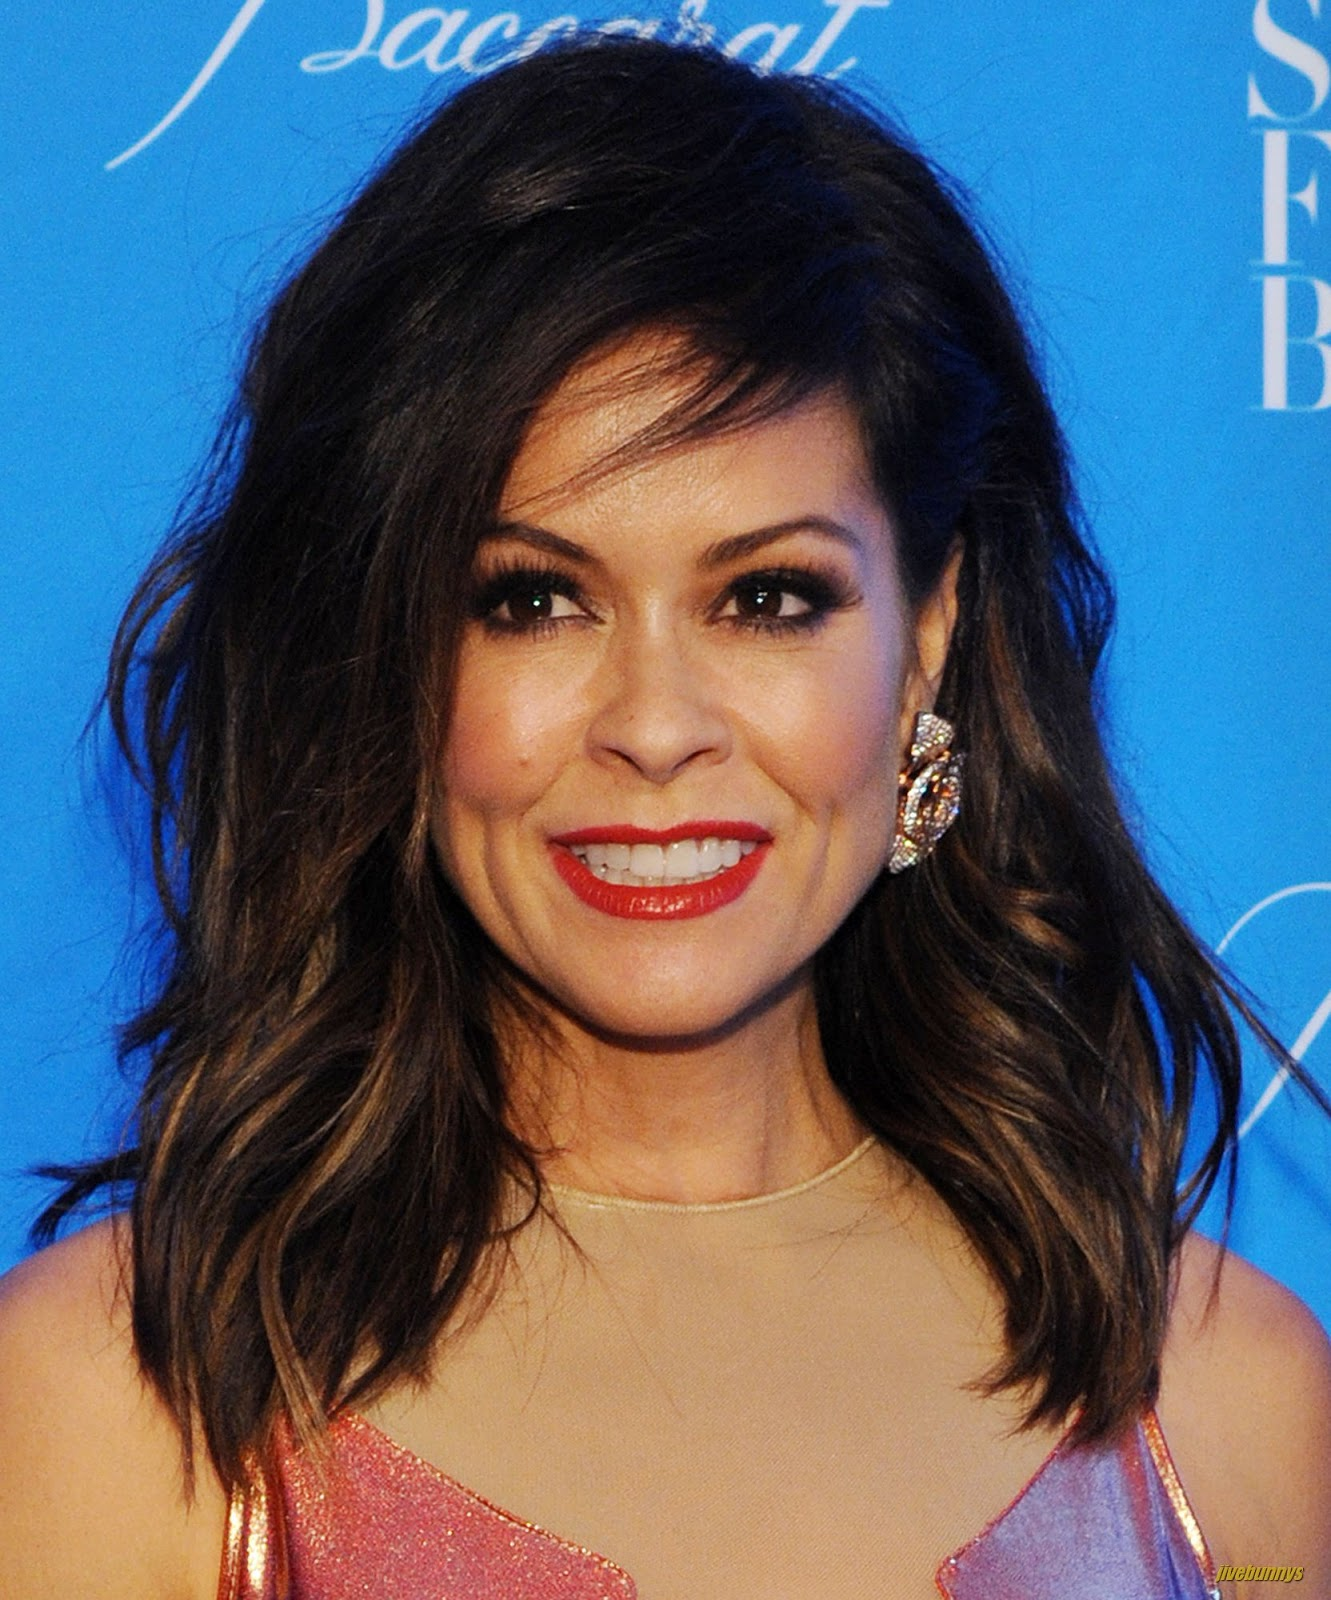 Jivebunnys female celebrity picture gallery brooke burke hq photo - Jivebunnys Female Celebrity Picture Gallery Brooke Burke